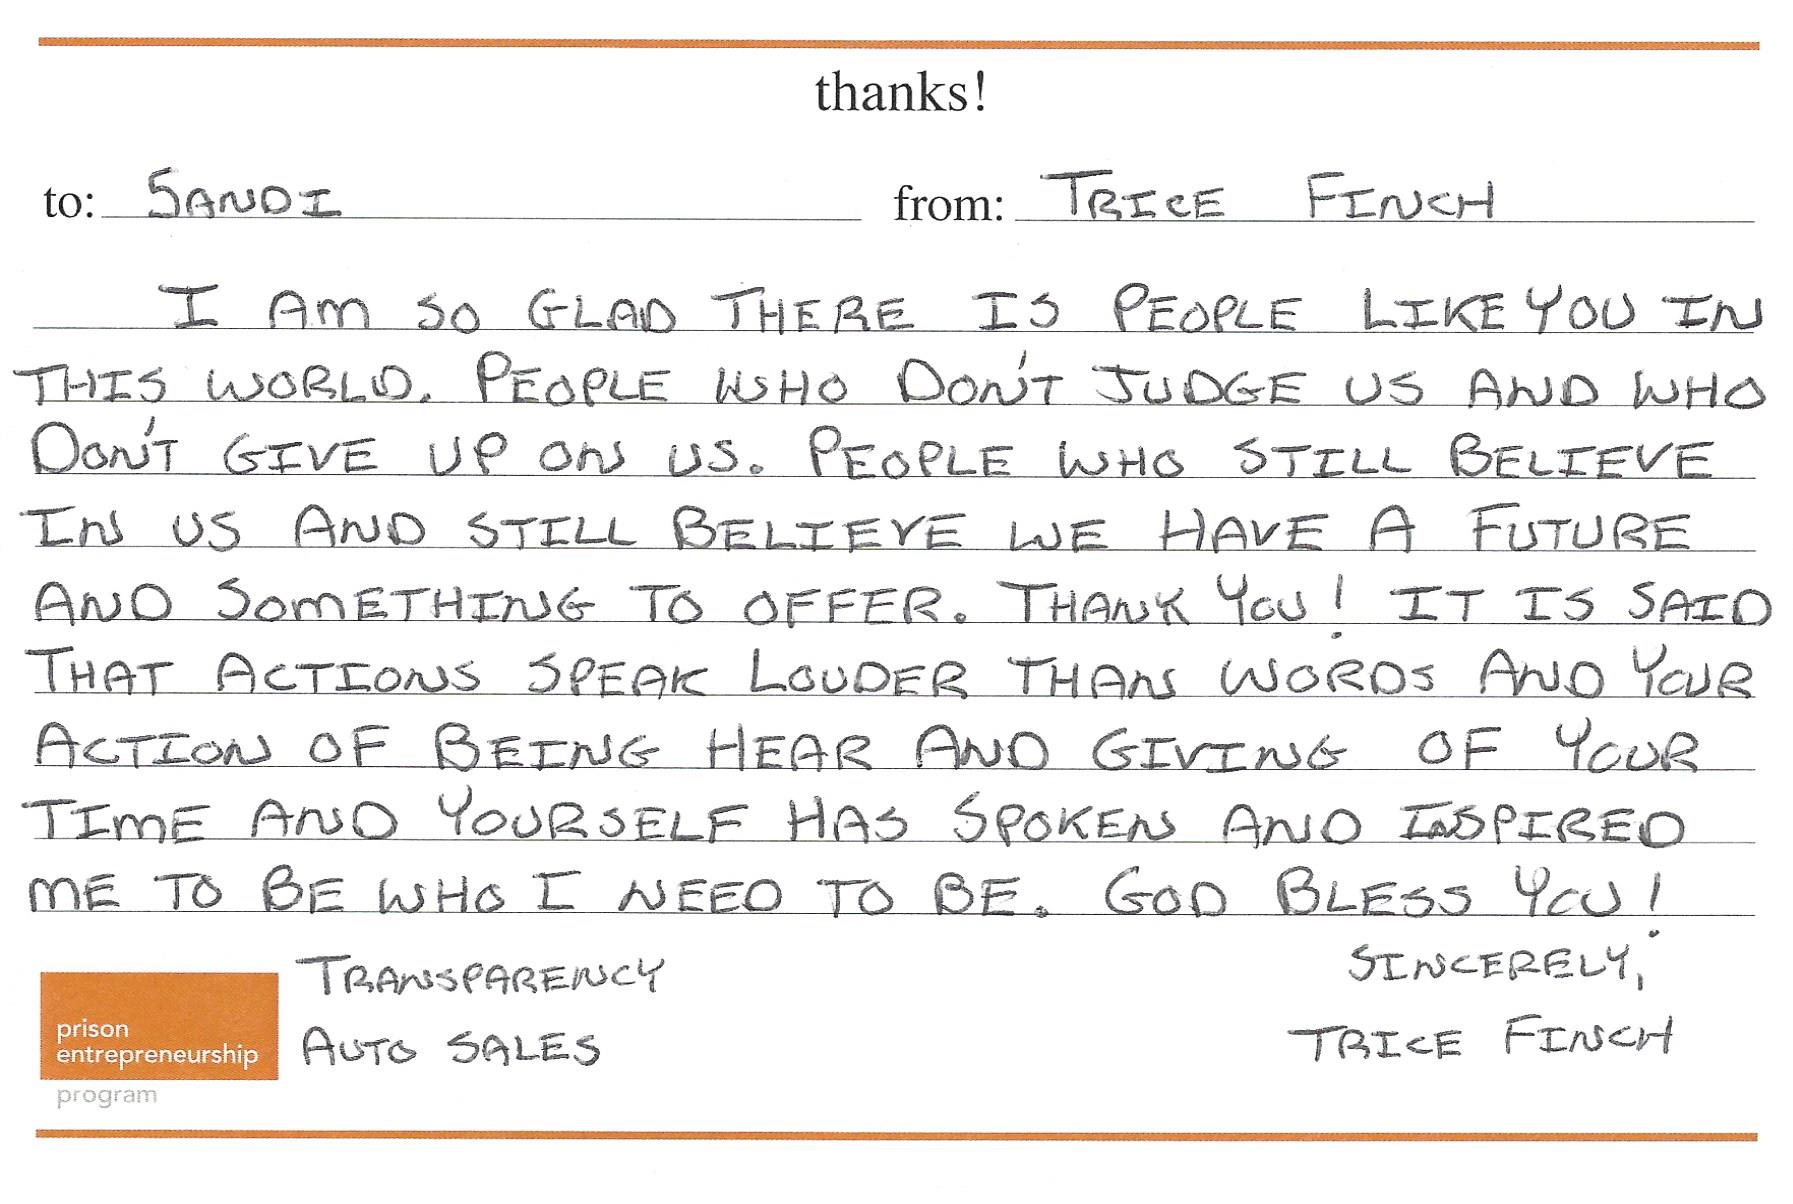 Thank you card 7